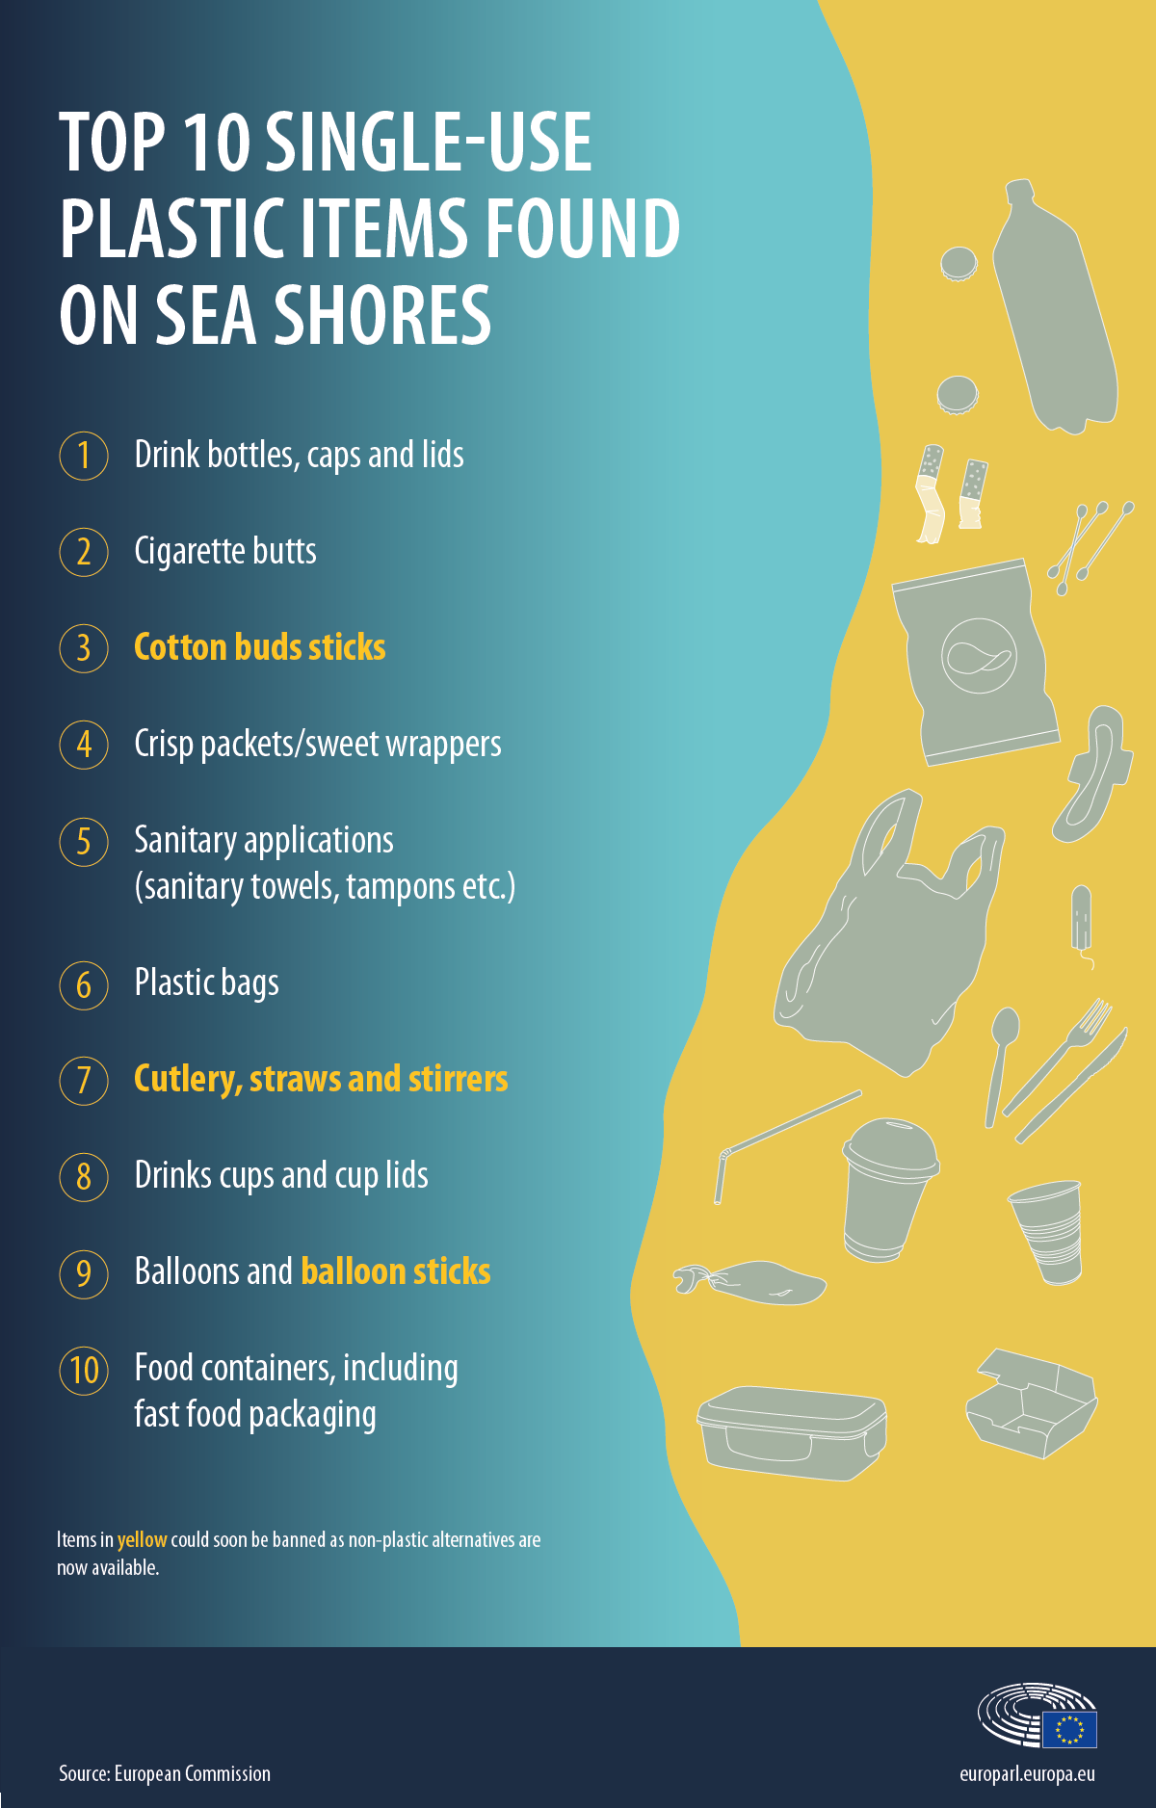 List of top 10 single use plastic items found on beaches